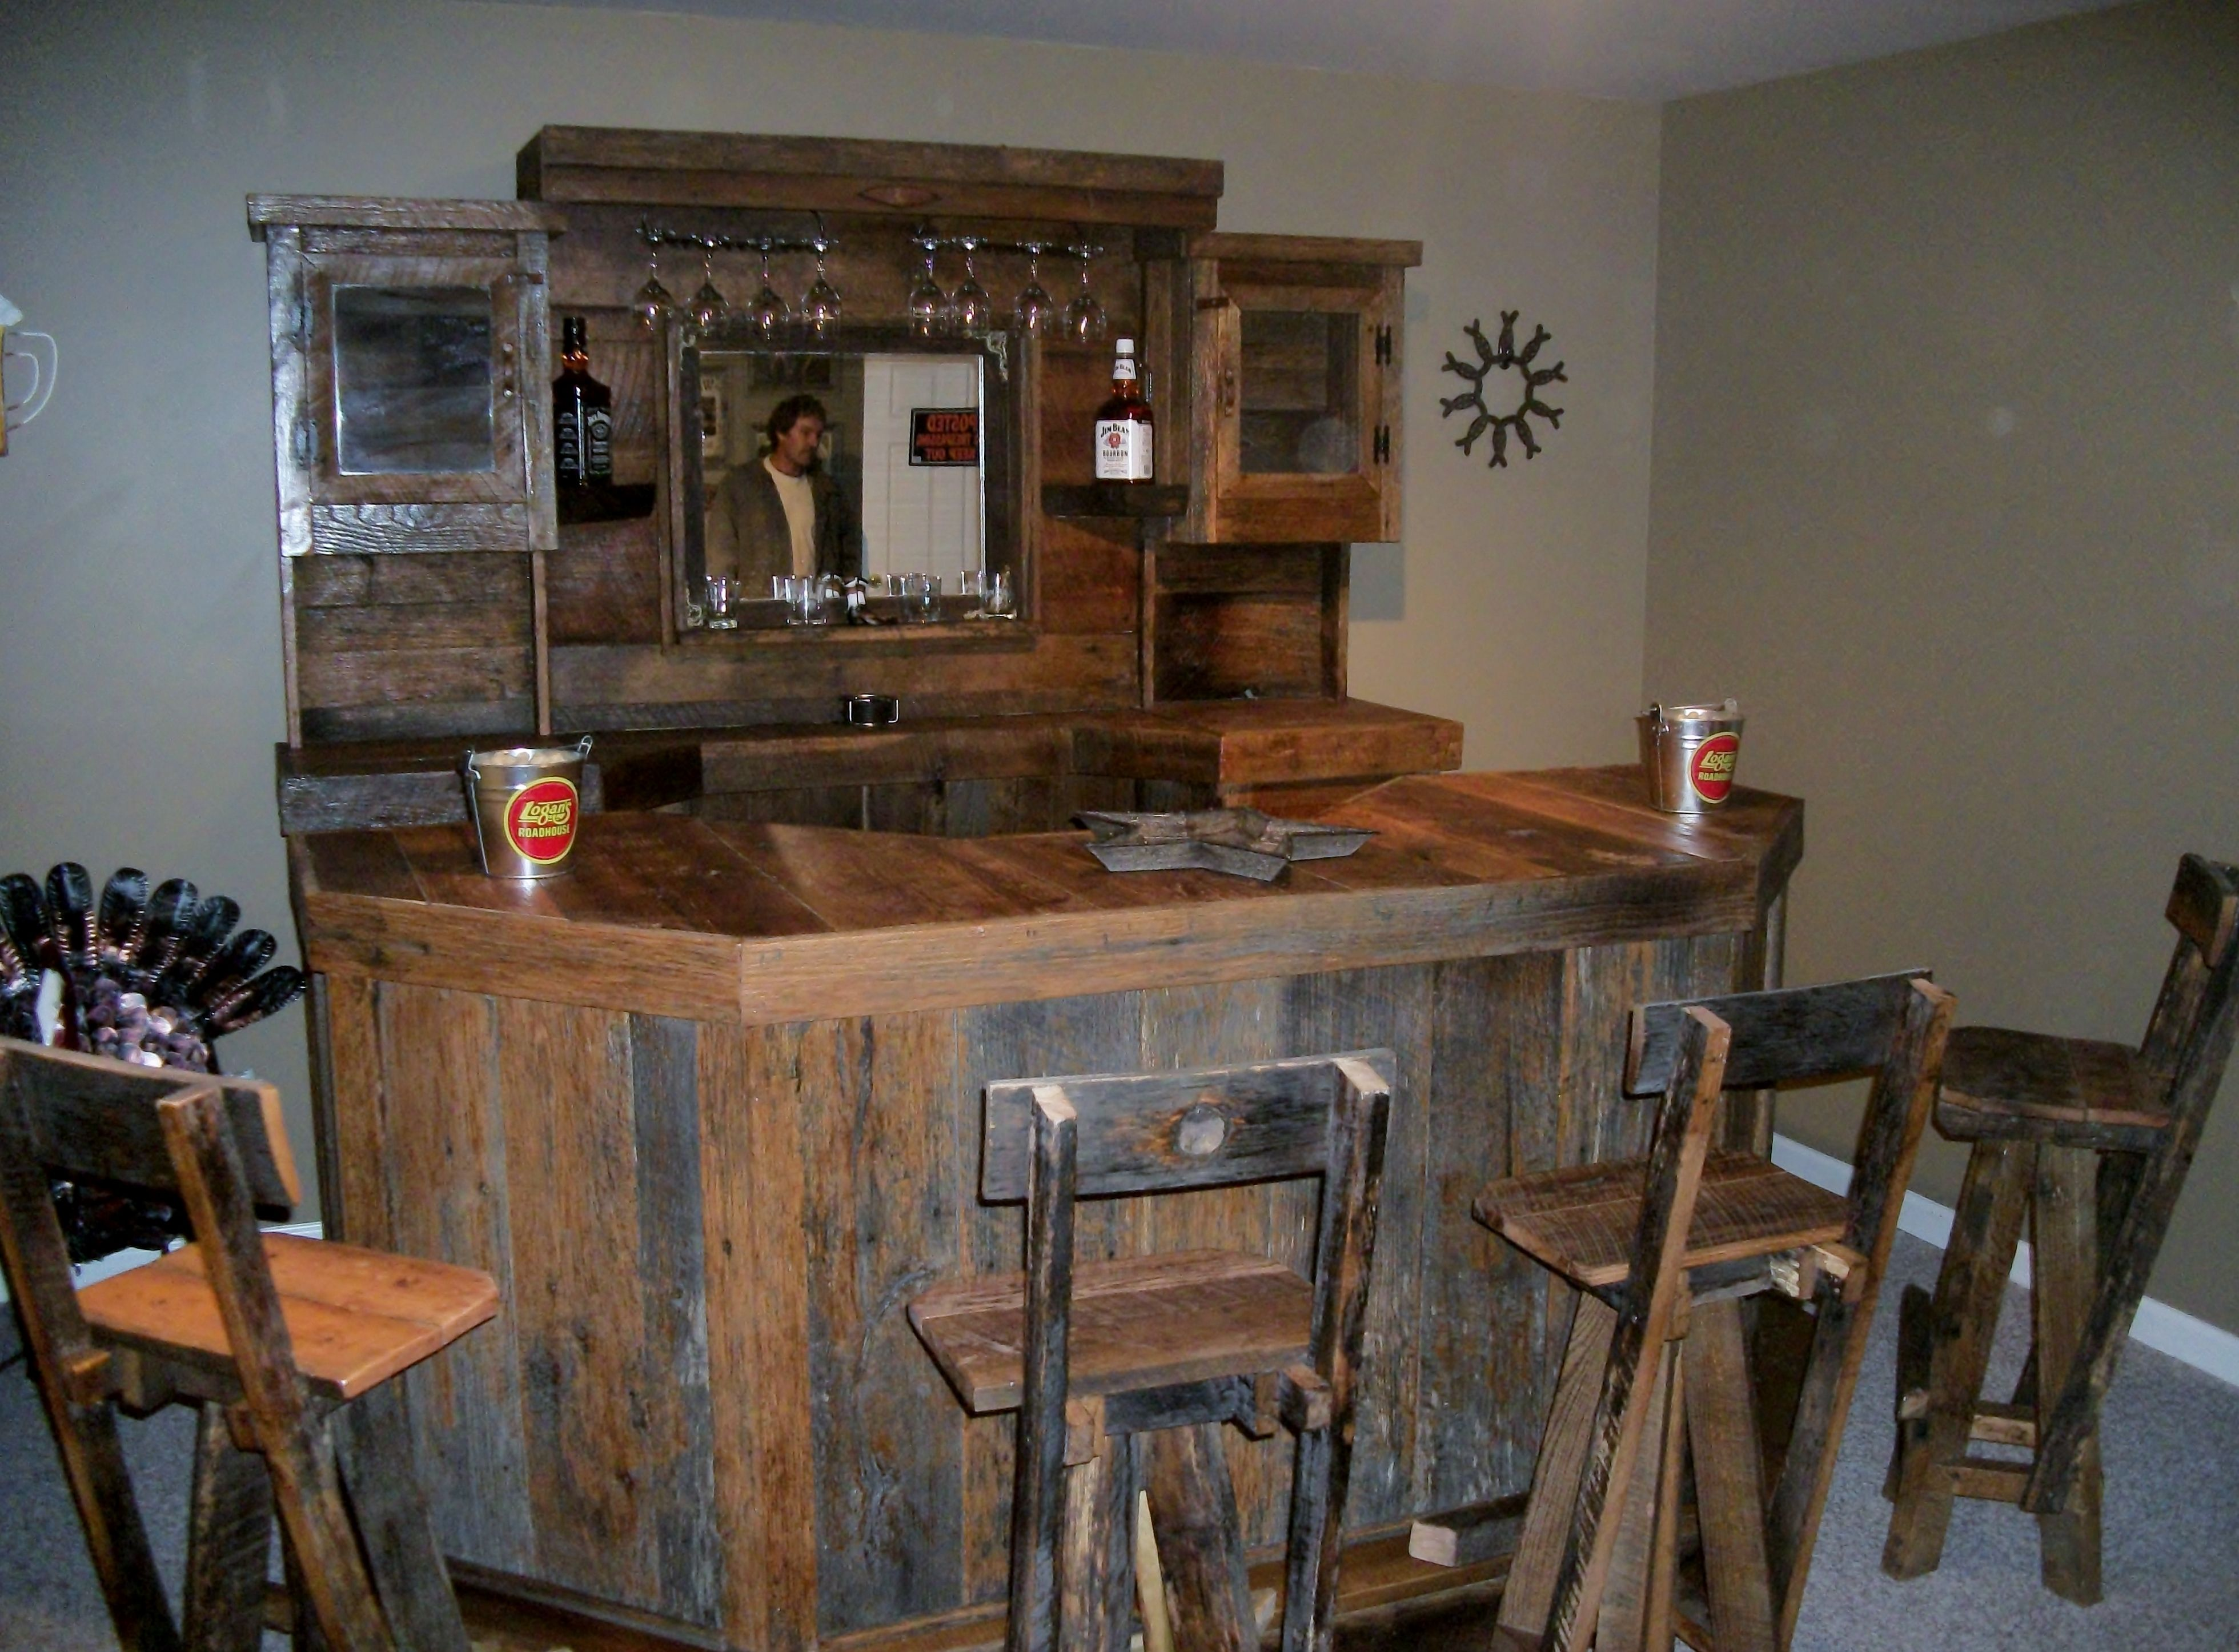 Uncategorized Old Wooden Bar this barn wood bar and the stools were some of first items that i built with old added a couple rakes as win